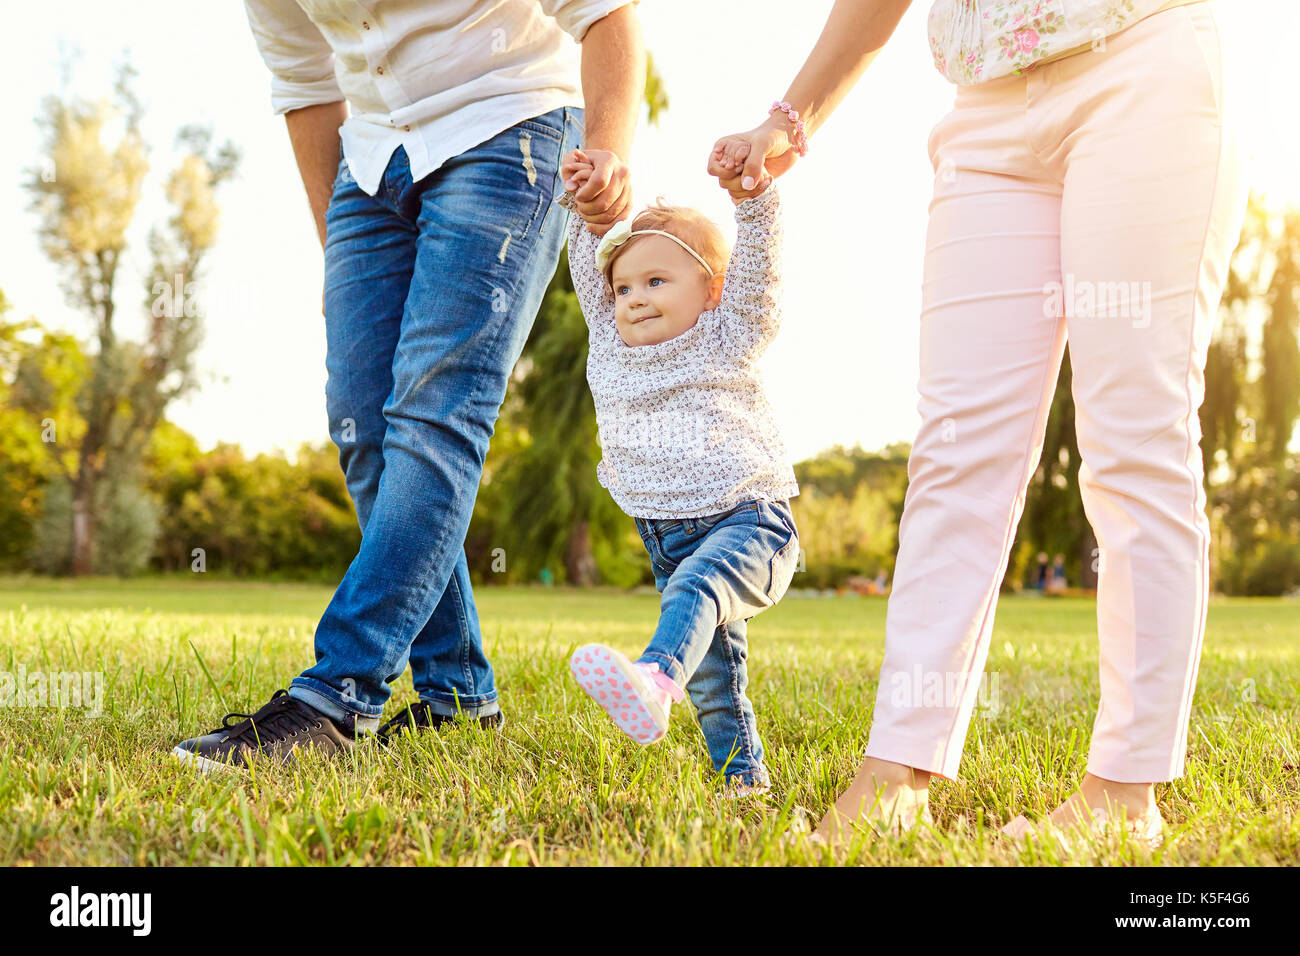 The first steps of the baby.  A happy family. - Stock Image